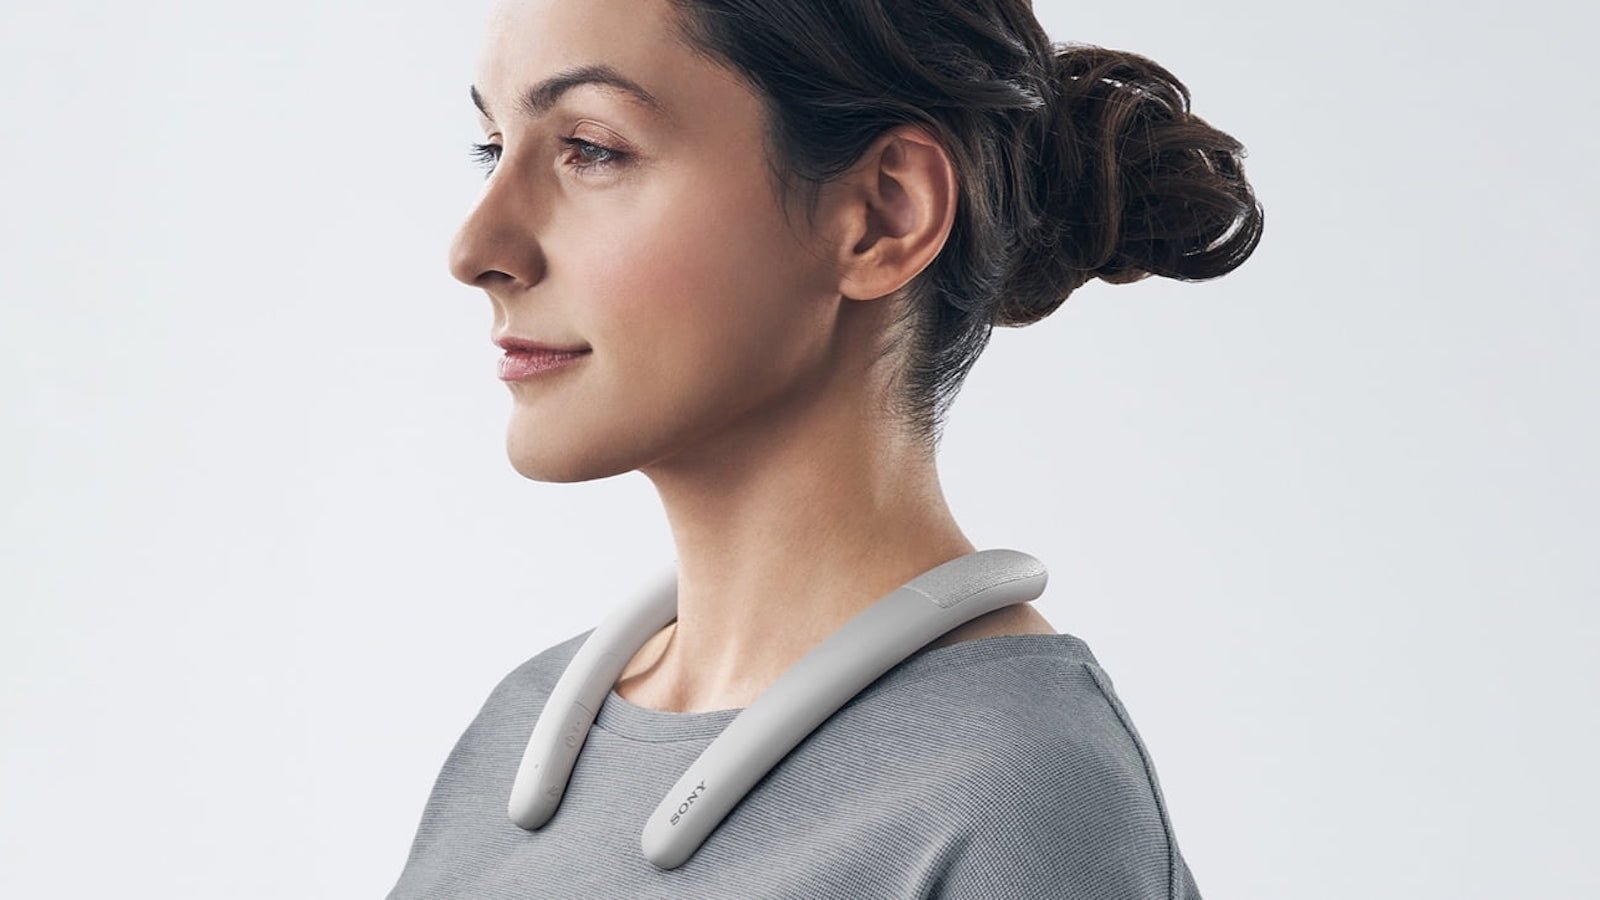 Sony SRS-NB10 neckband speaker has buttons for mute, volume, and power for convenient use